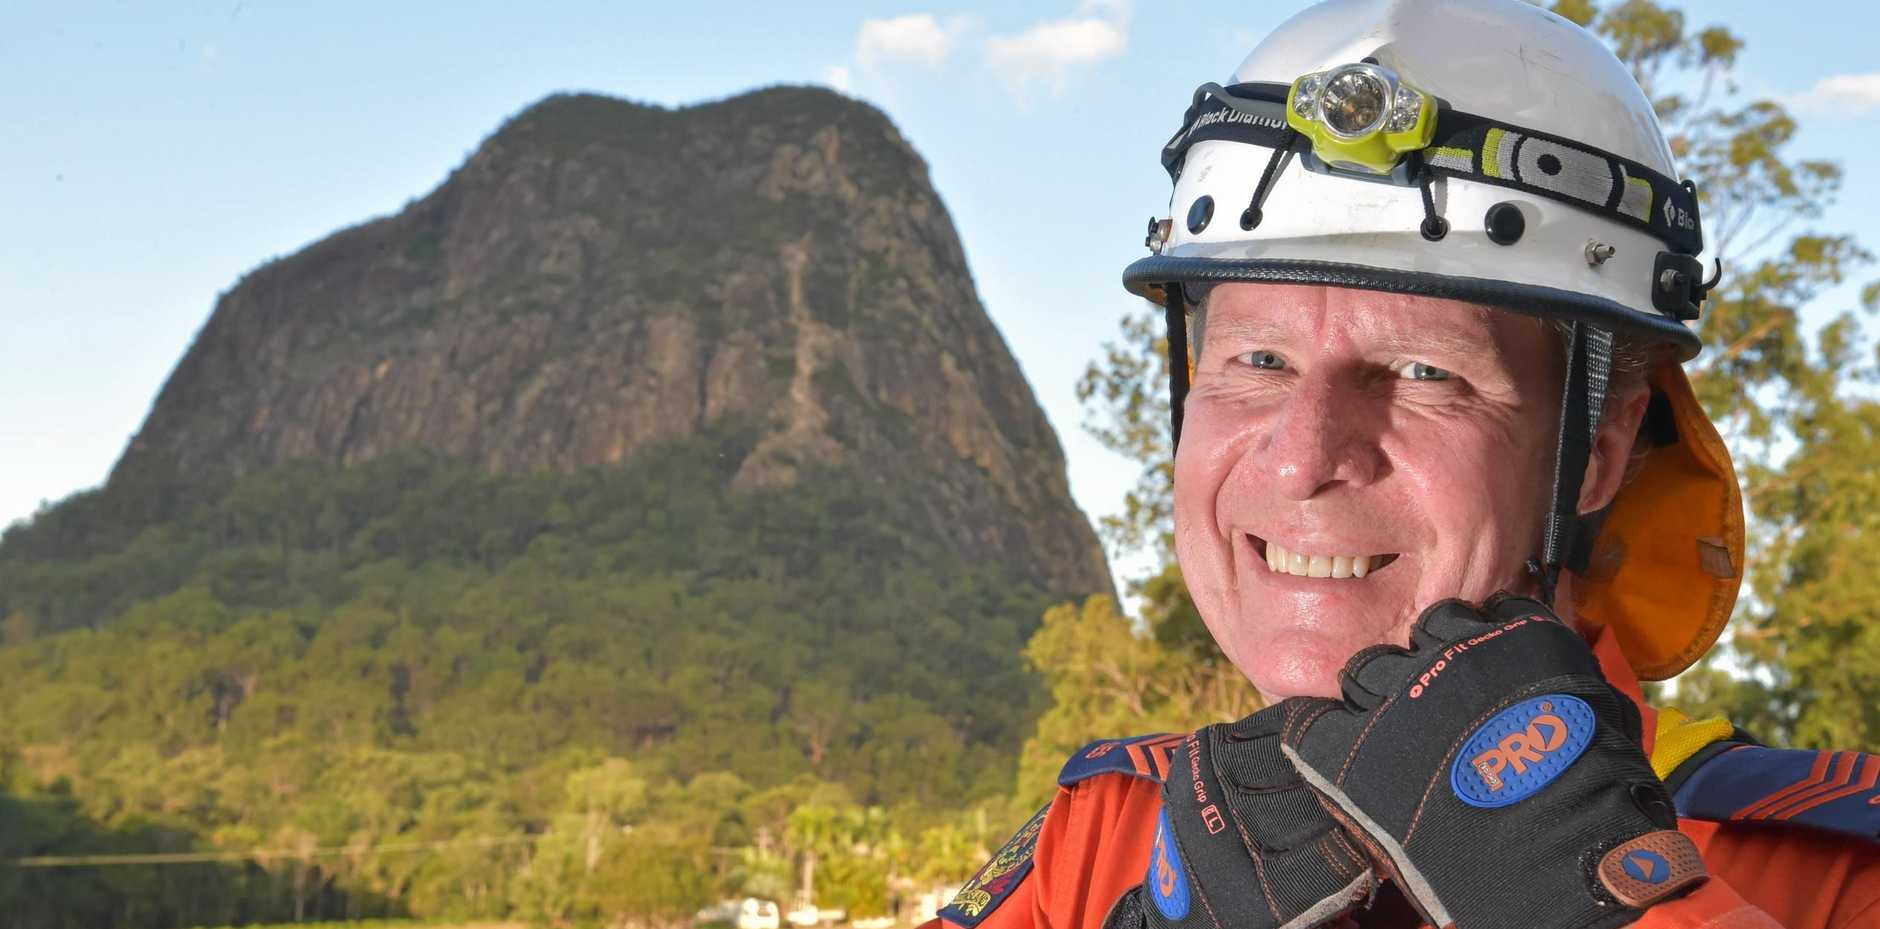 Lou Spann has been rescuing climbers stranded on Glass House Mountains for nearly 30 years.